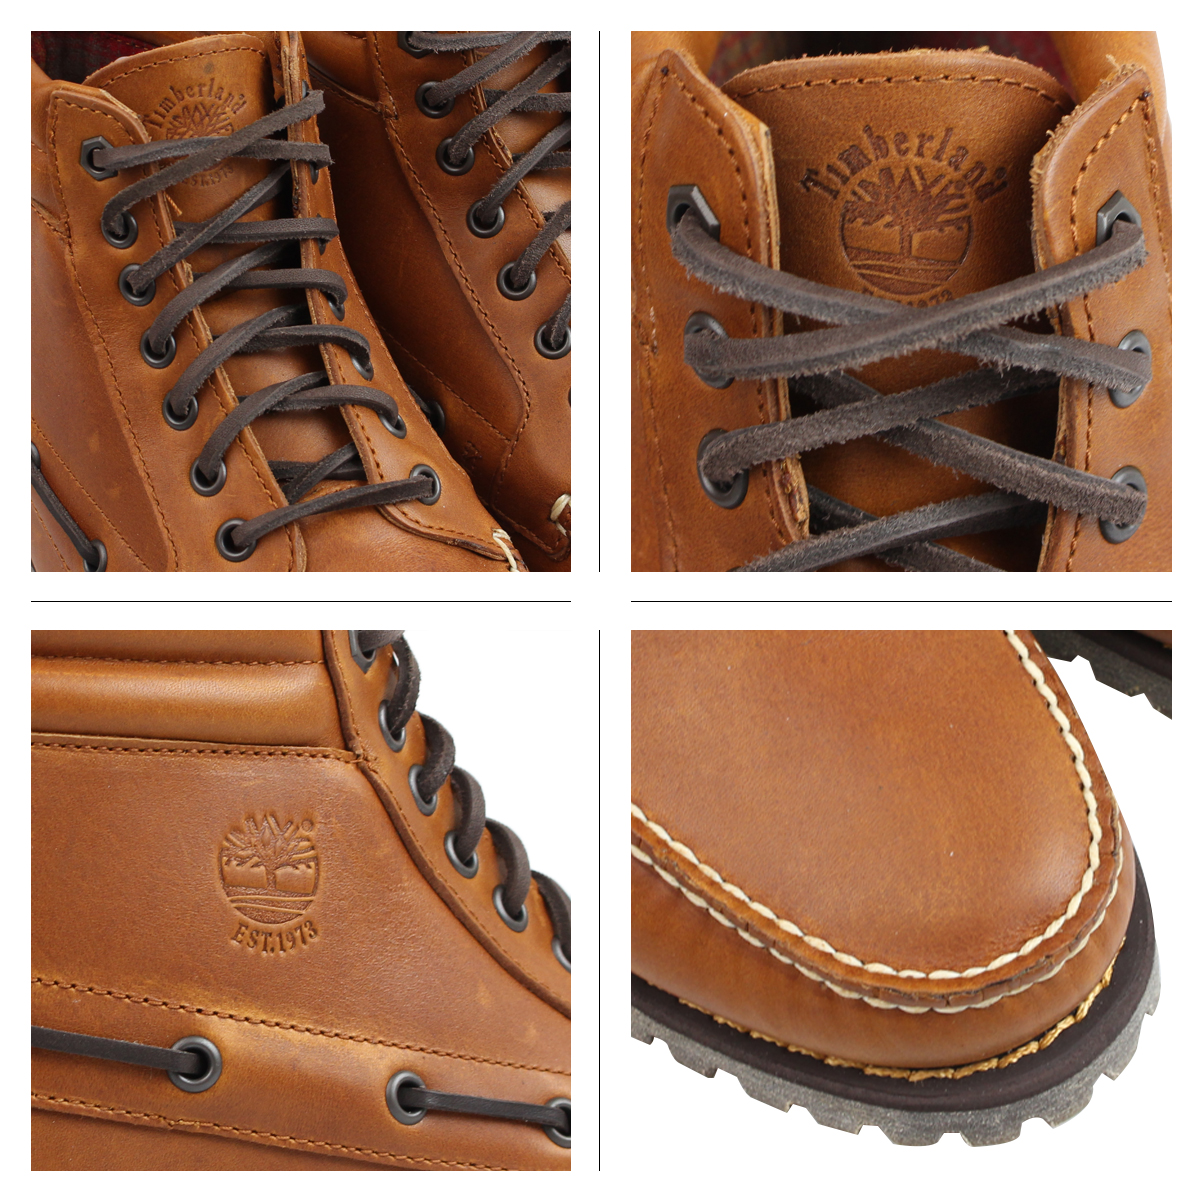 e3016509797d Timberland Timberland PENDLETON mens AUTHENTICS 7 EYE CHUKKA chukka boots  authentic 7 eye chukka A12YX W wise clay pot